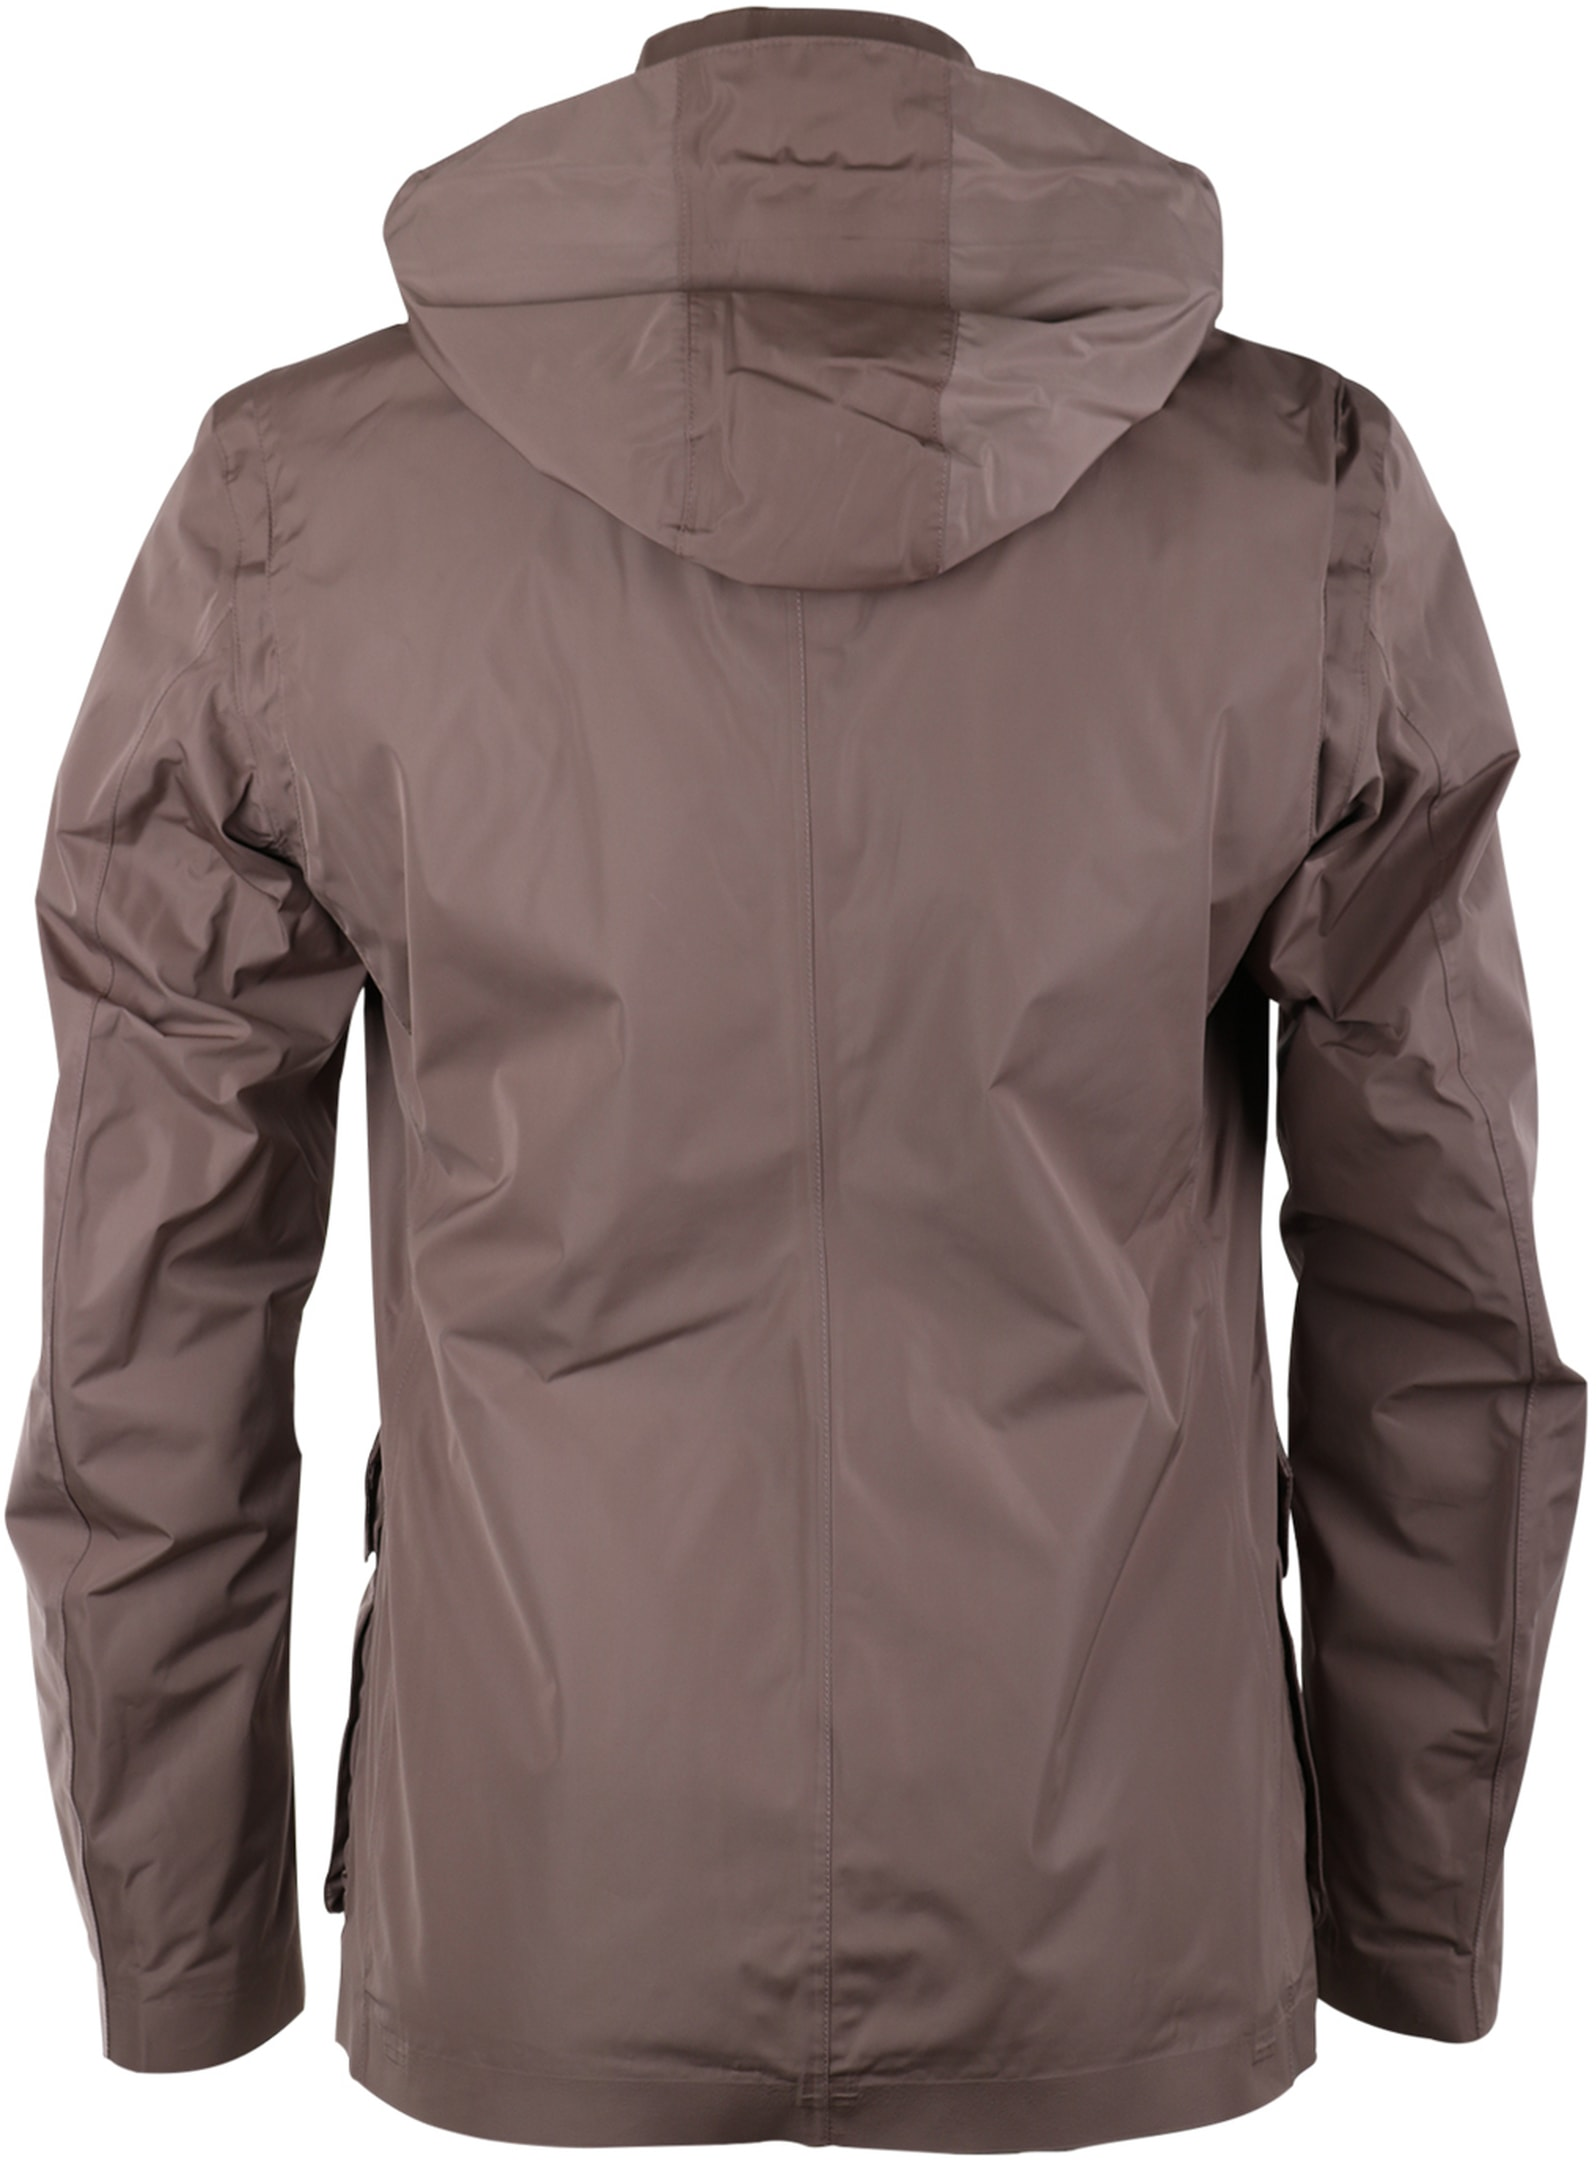 Barbour Thurso Jas Zand foto 1